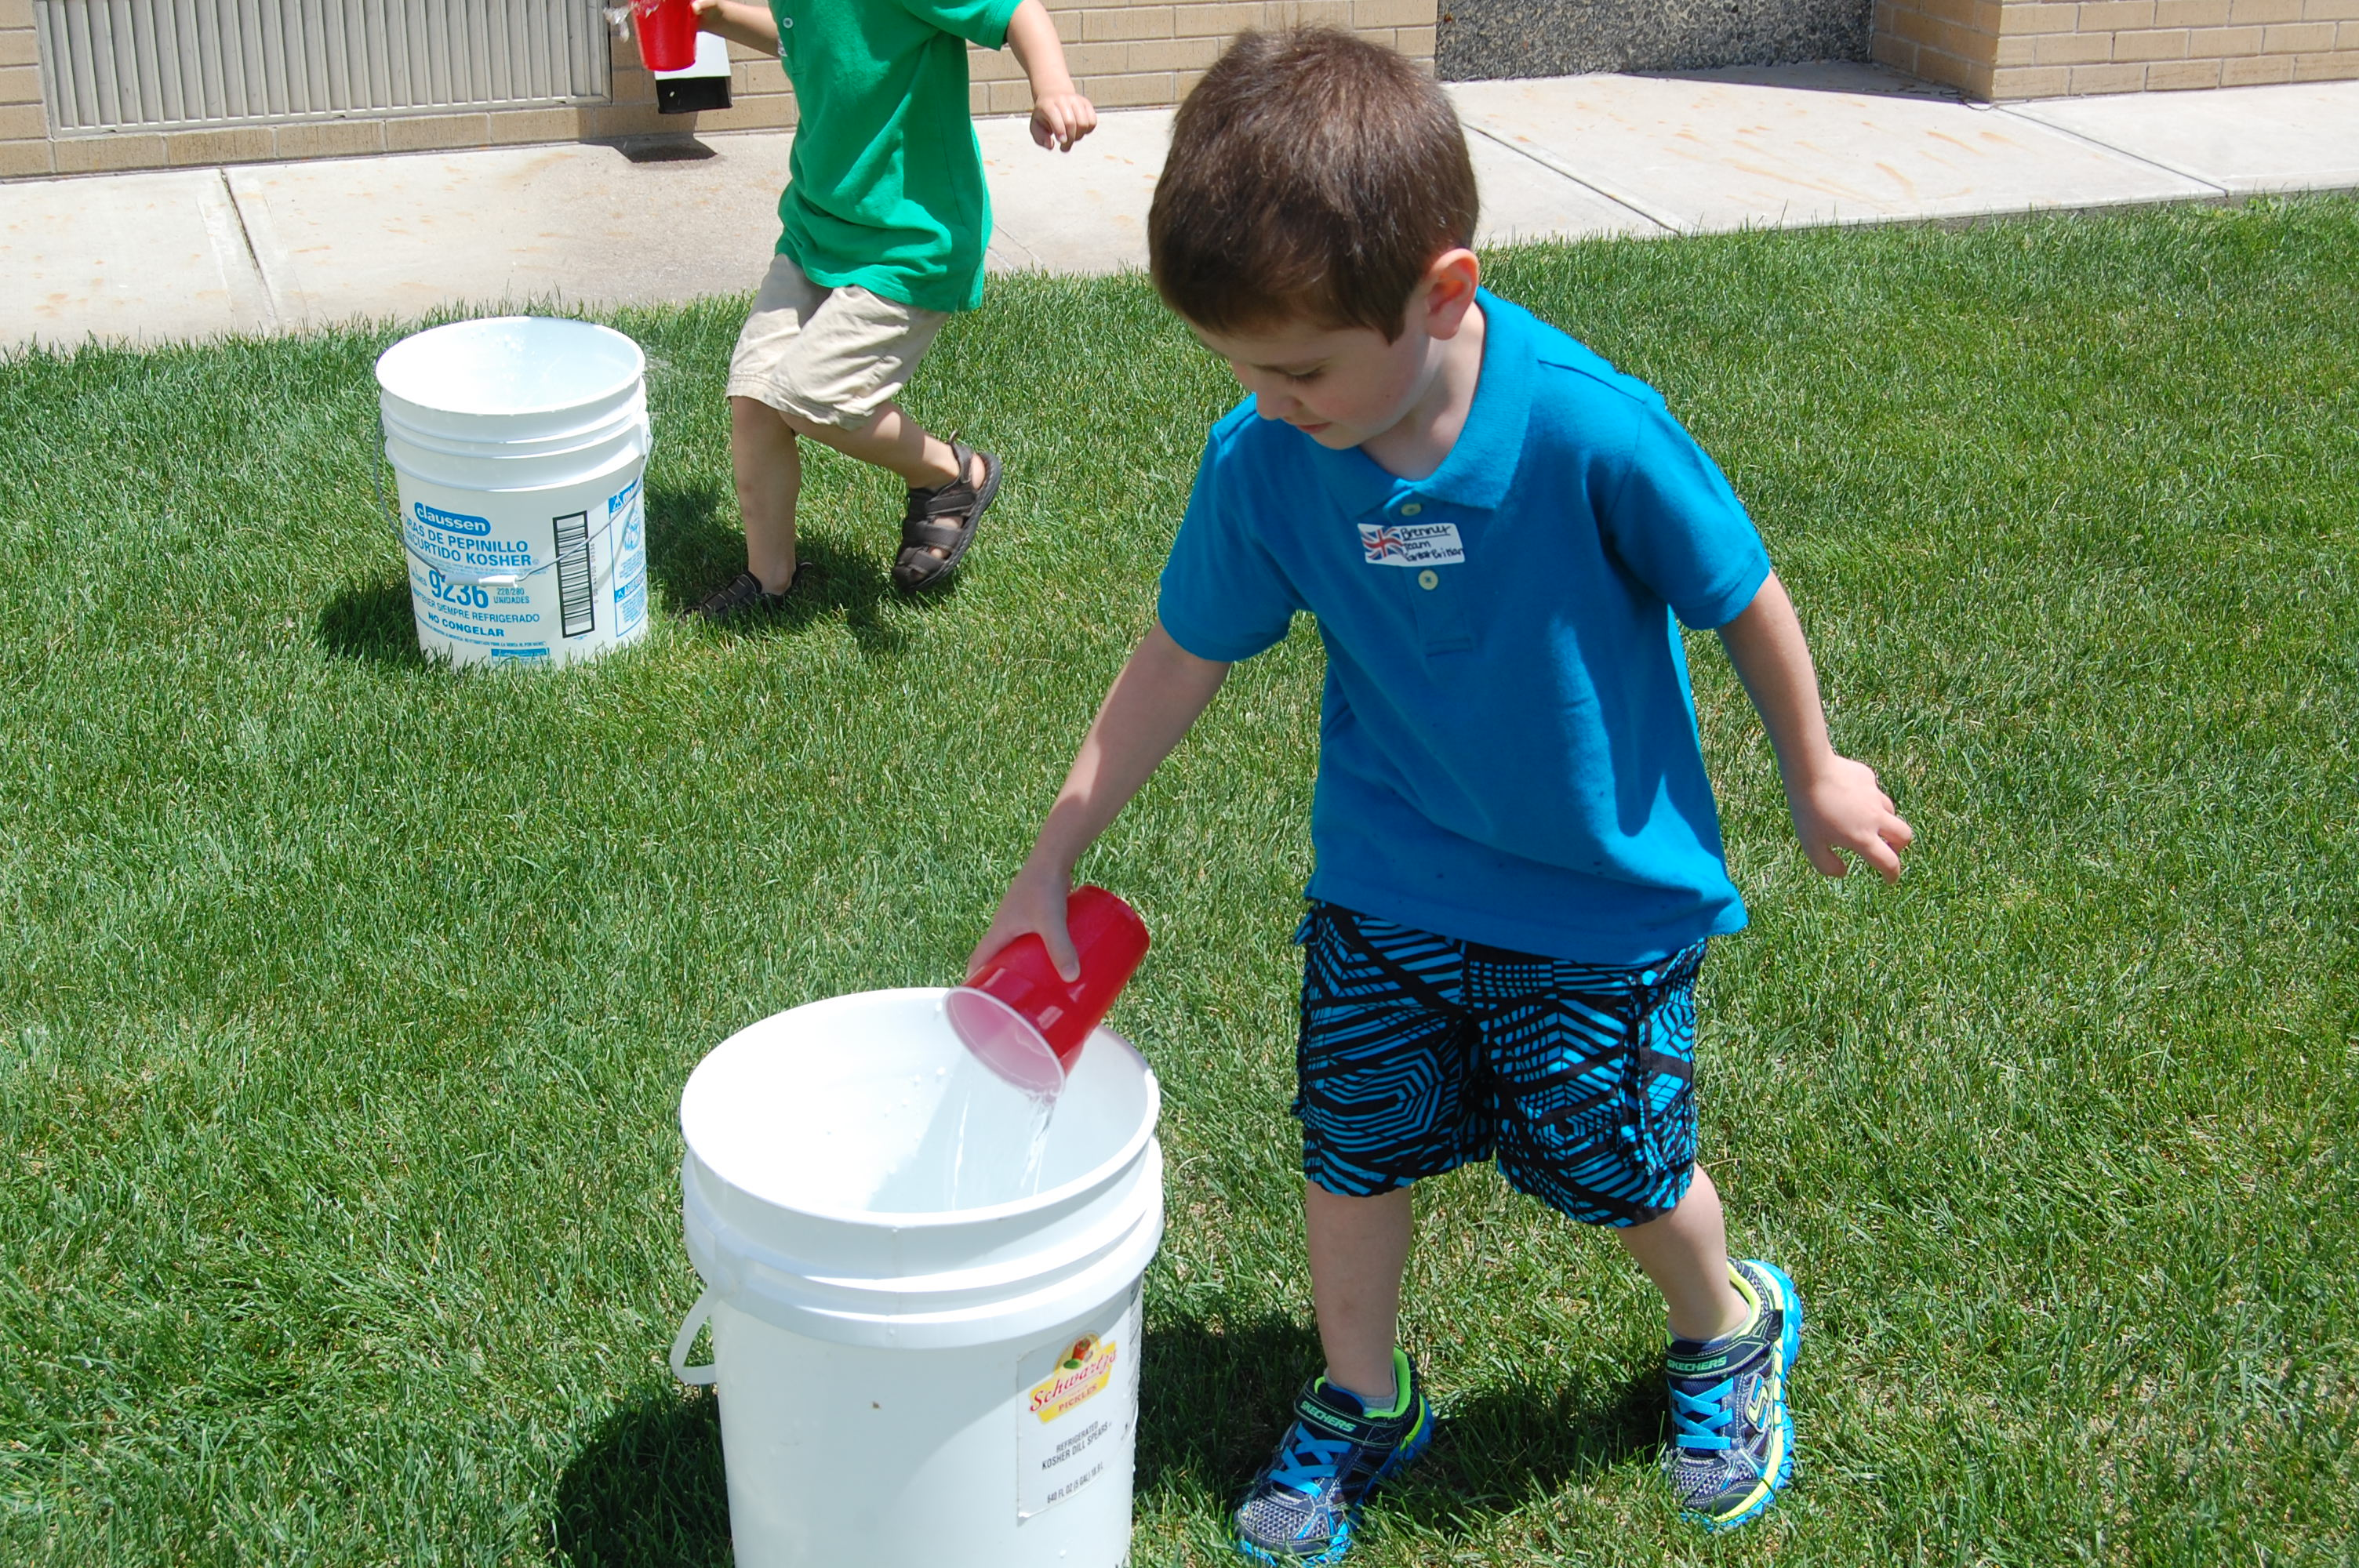 Brenner doing the water relay